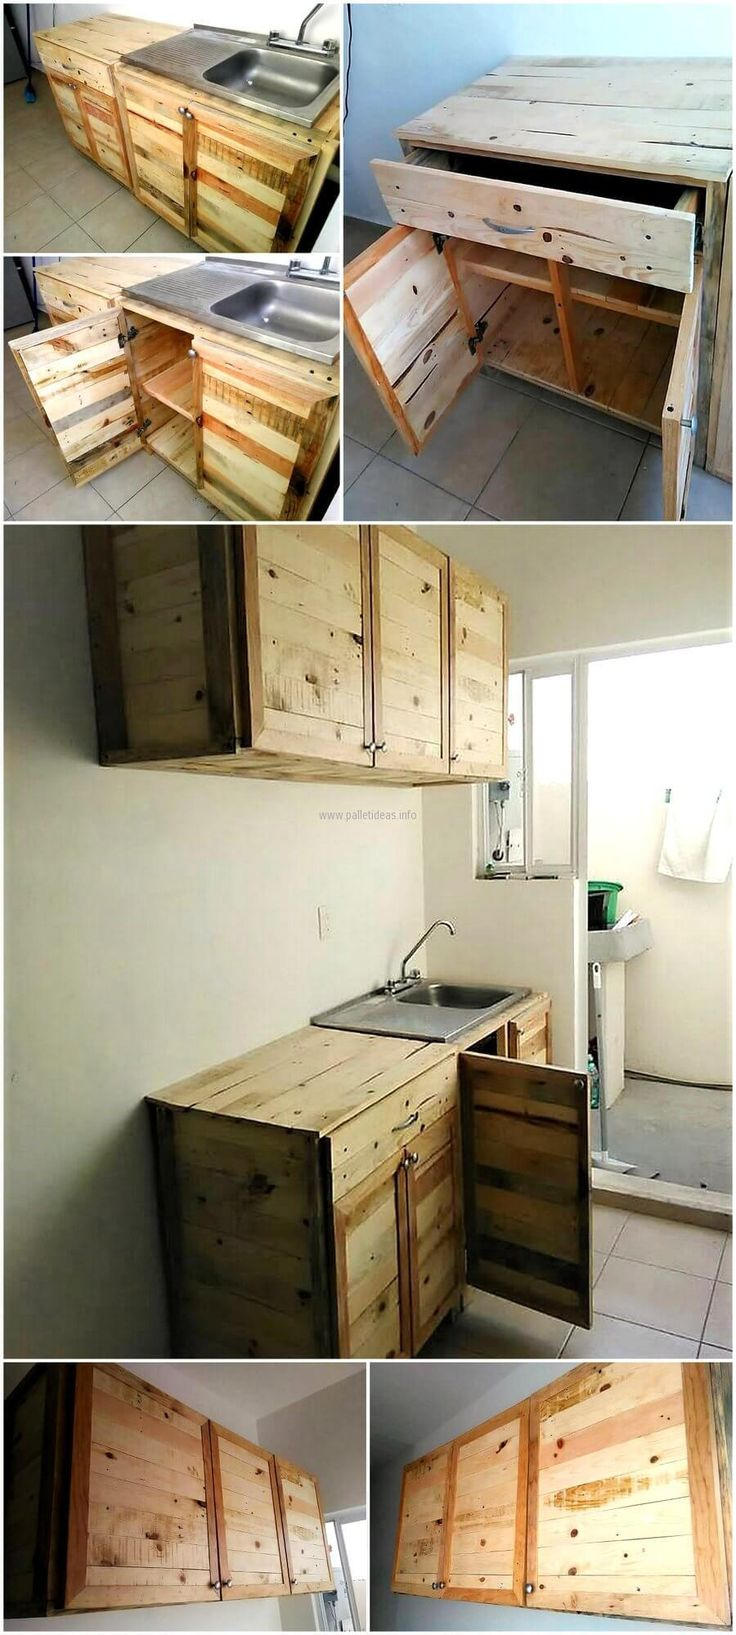 Wood Pallet Recycled Kitchen Cabinets